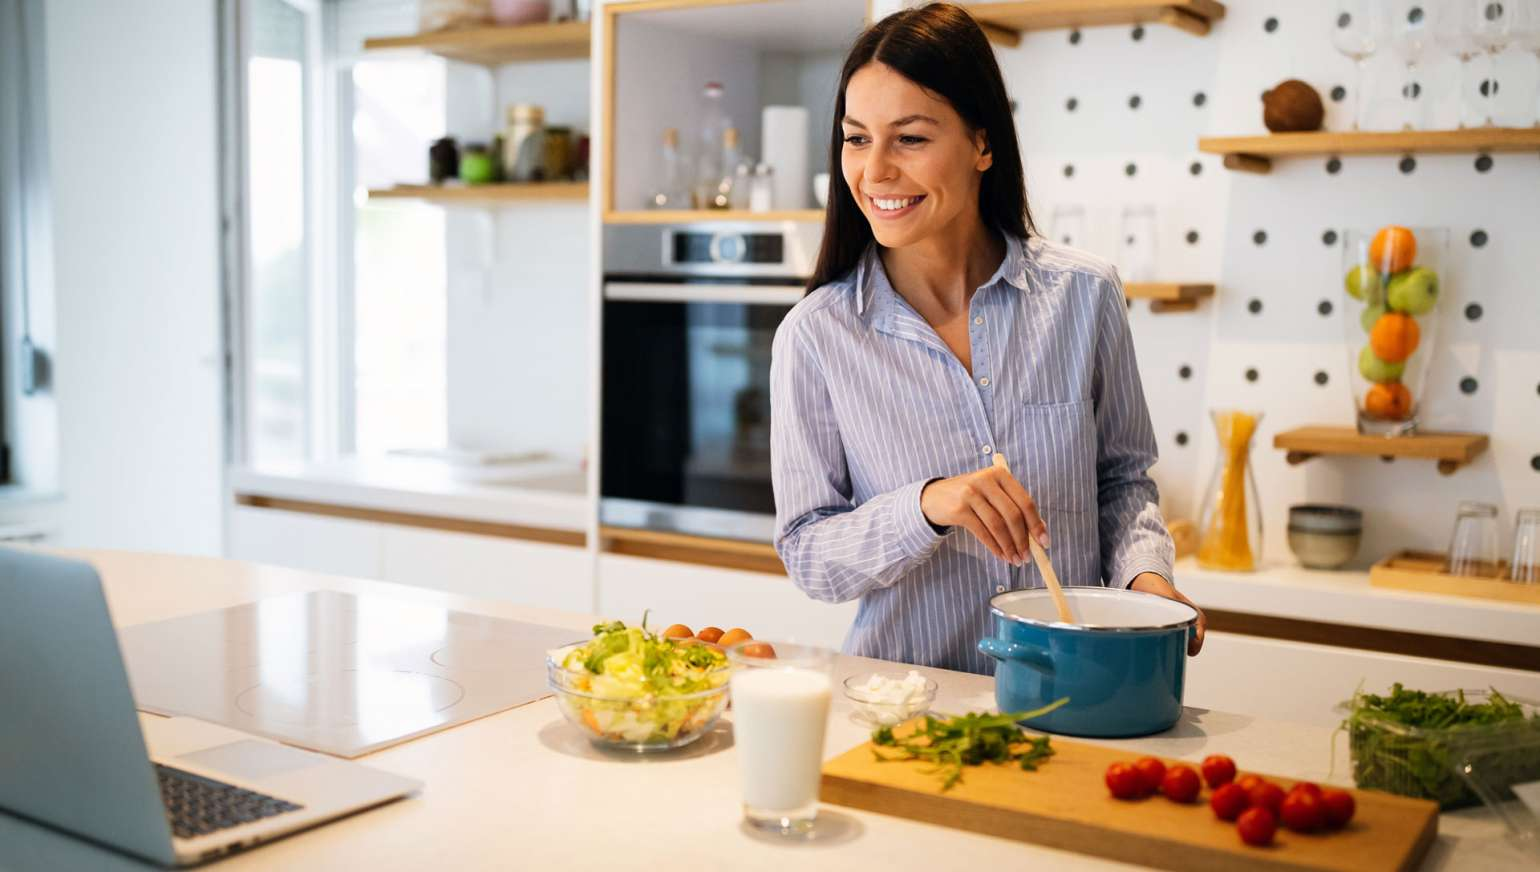 The Advantages of Taking a Cooking Course